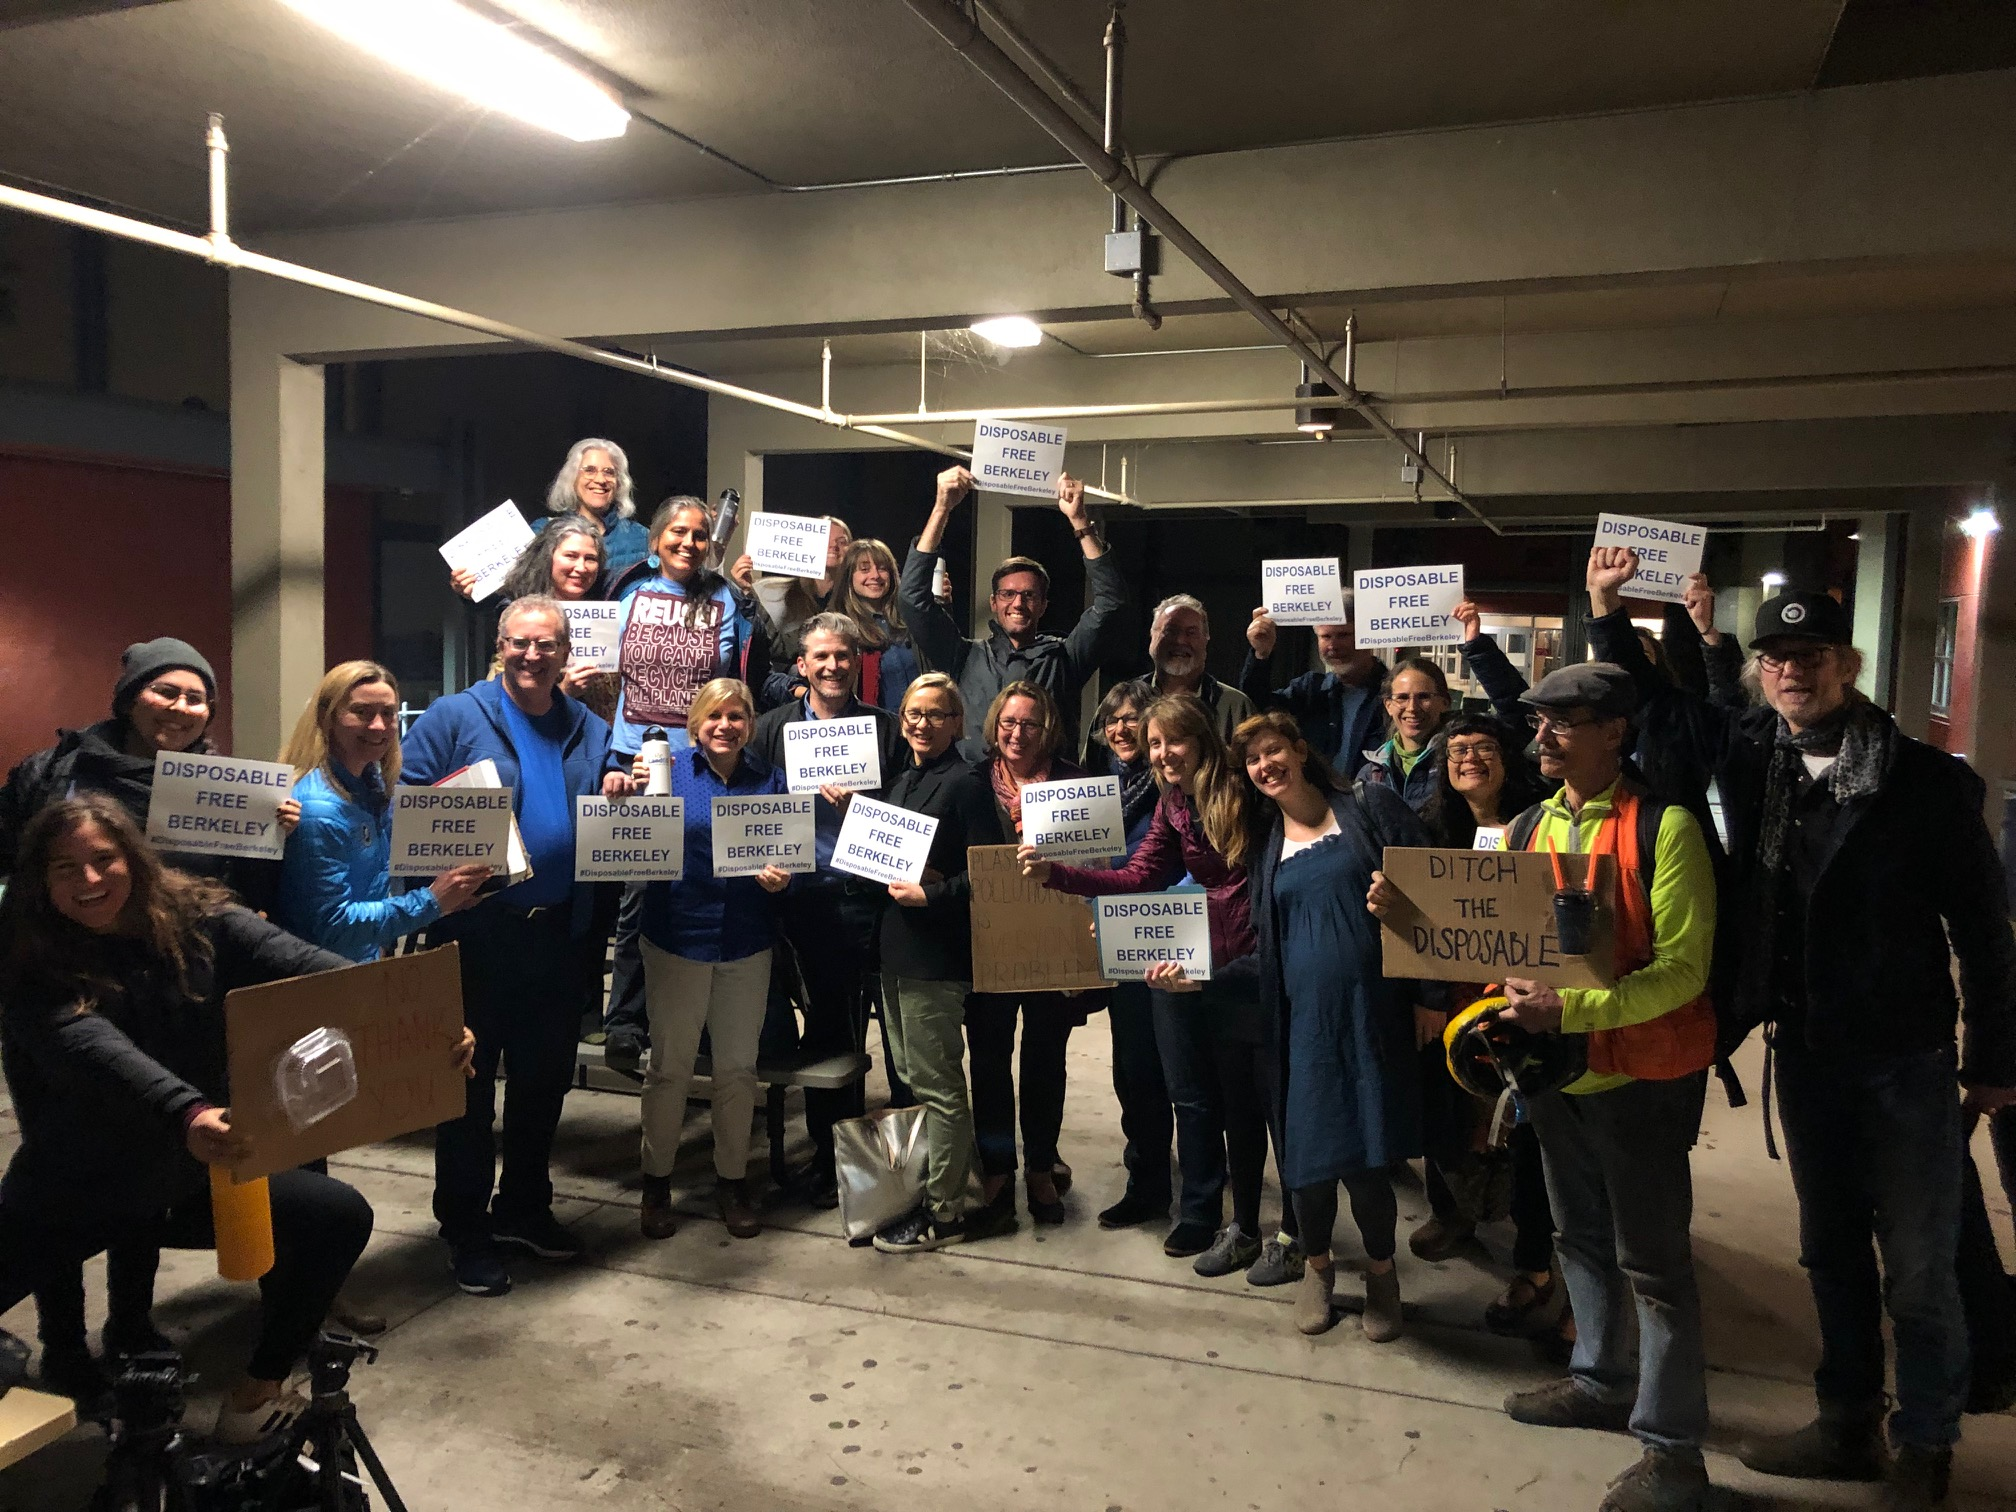 Community advocates, including ReThink Disposable team members, celebrate the passage of the Berkeley ordinance